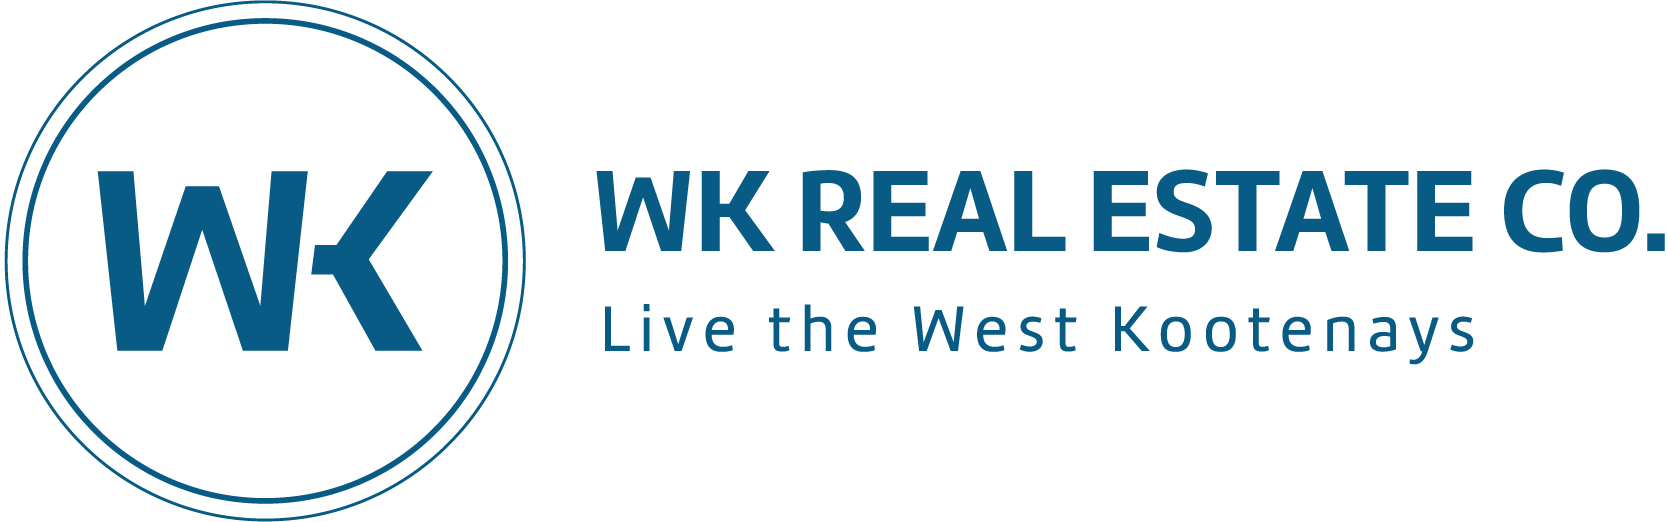 WK Real Estate Co.